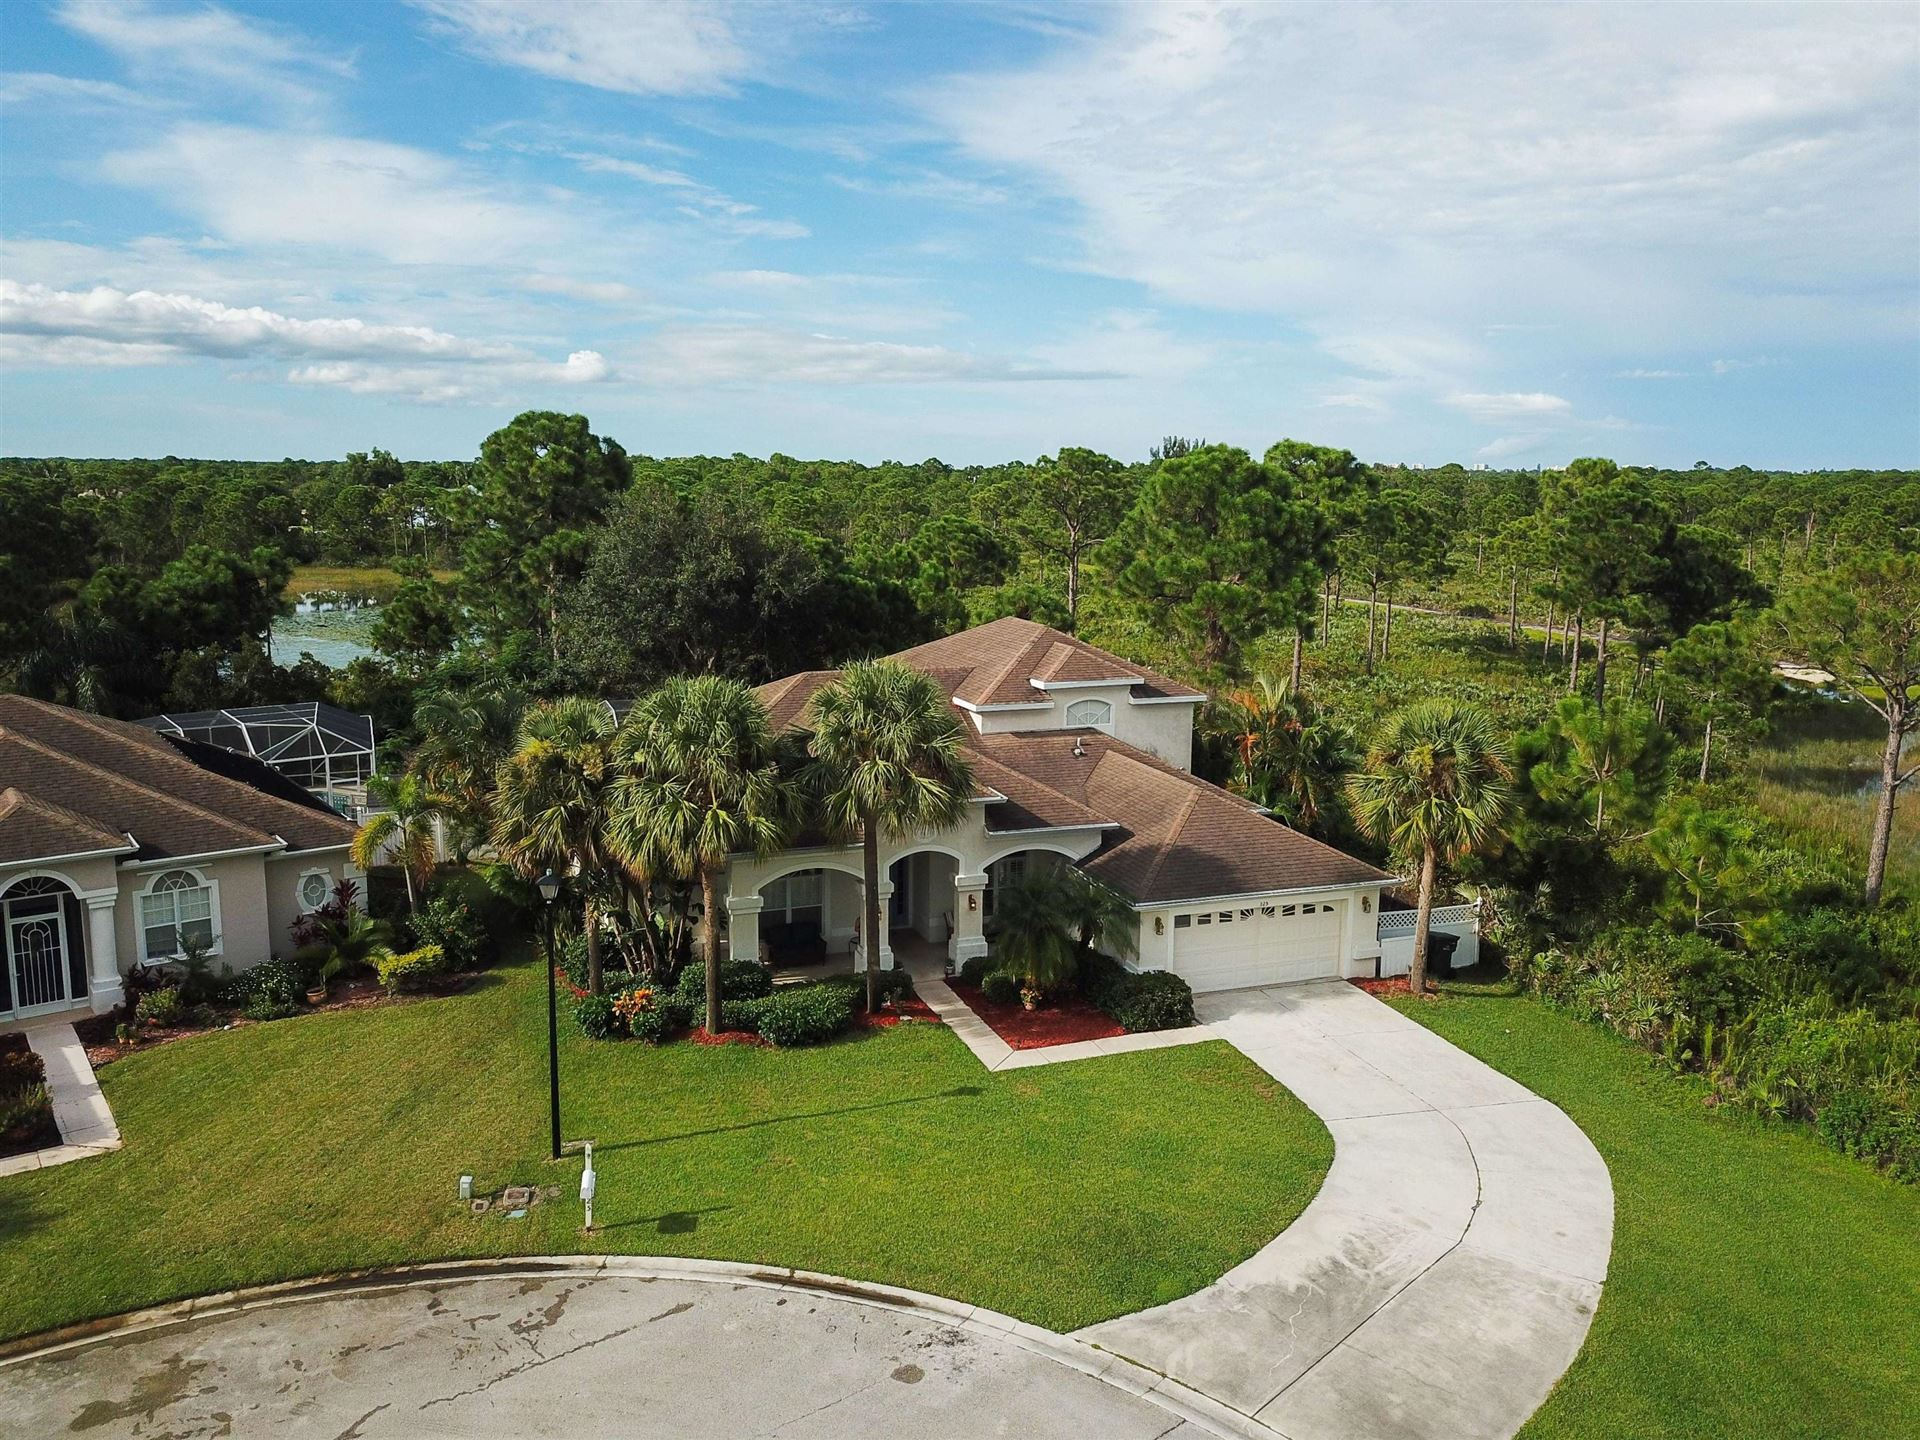 325 NW Dewburry Terrace, Jensen Beach, FL 34957 - #: RX-10569427